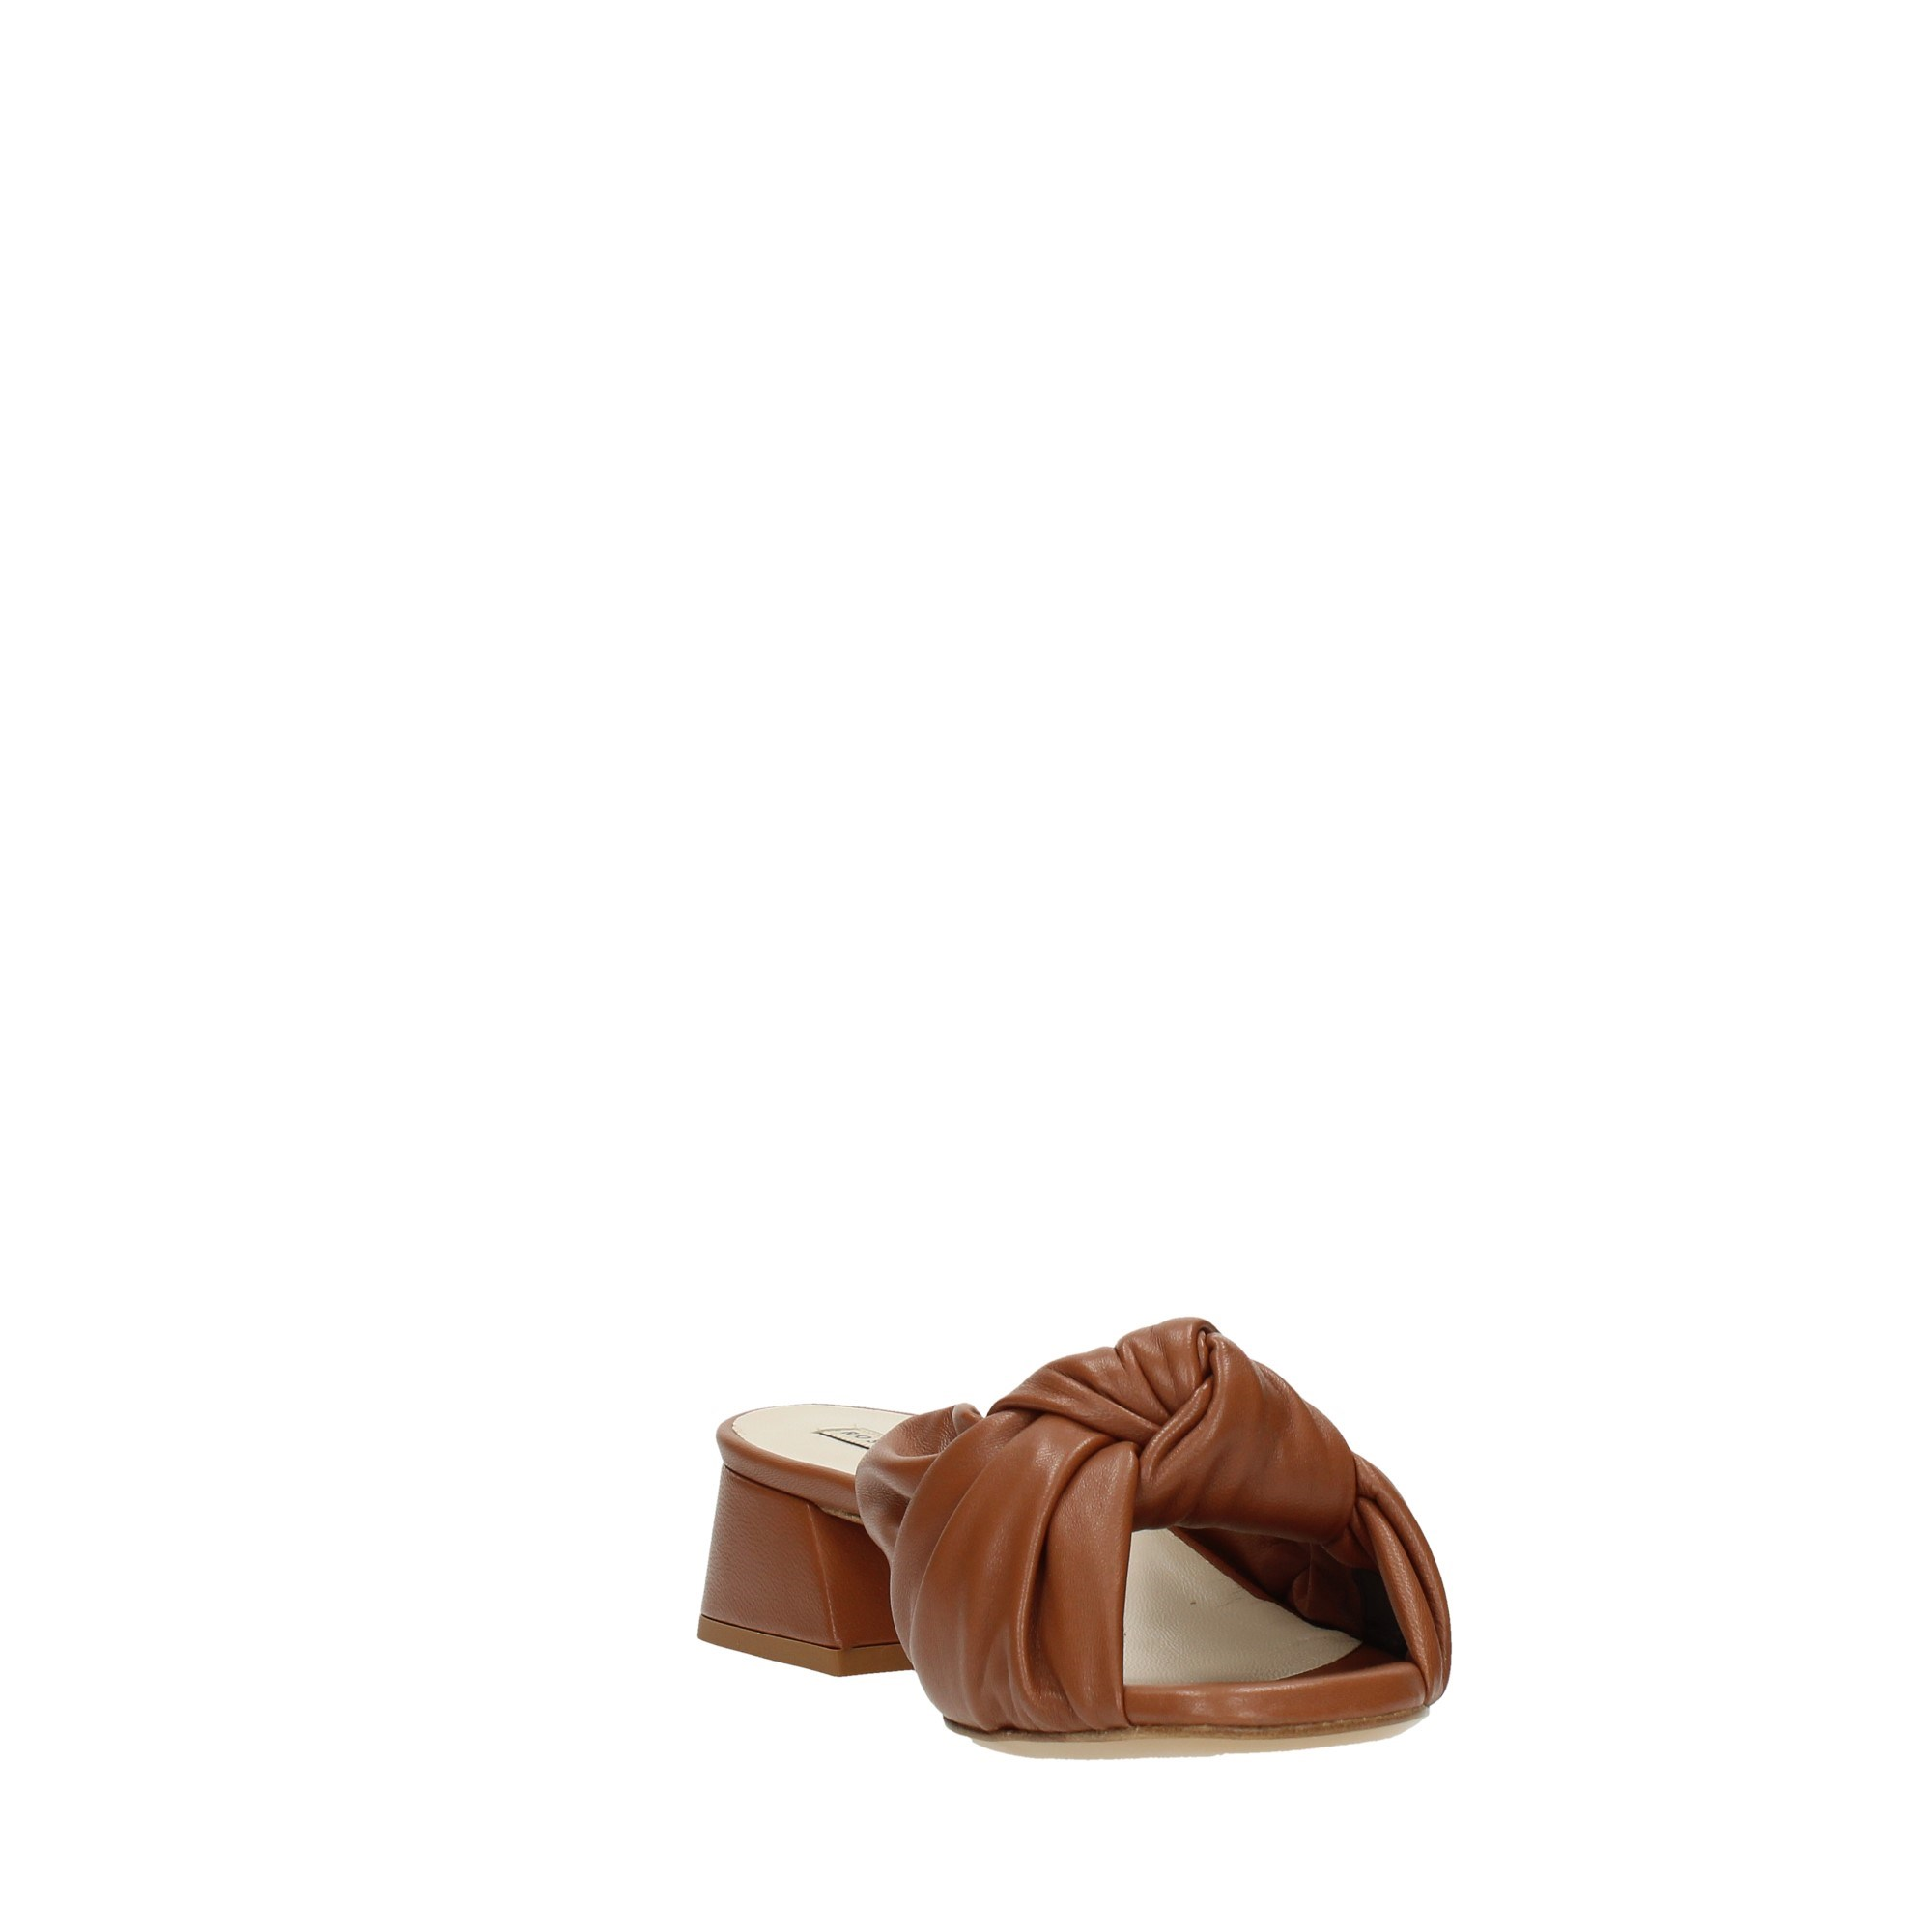 Ross-loy Shoes Women Sandals Leather 192